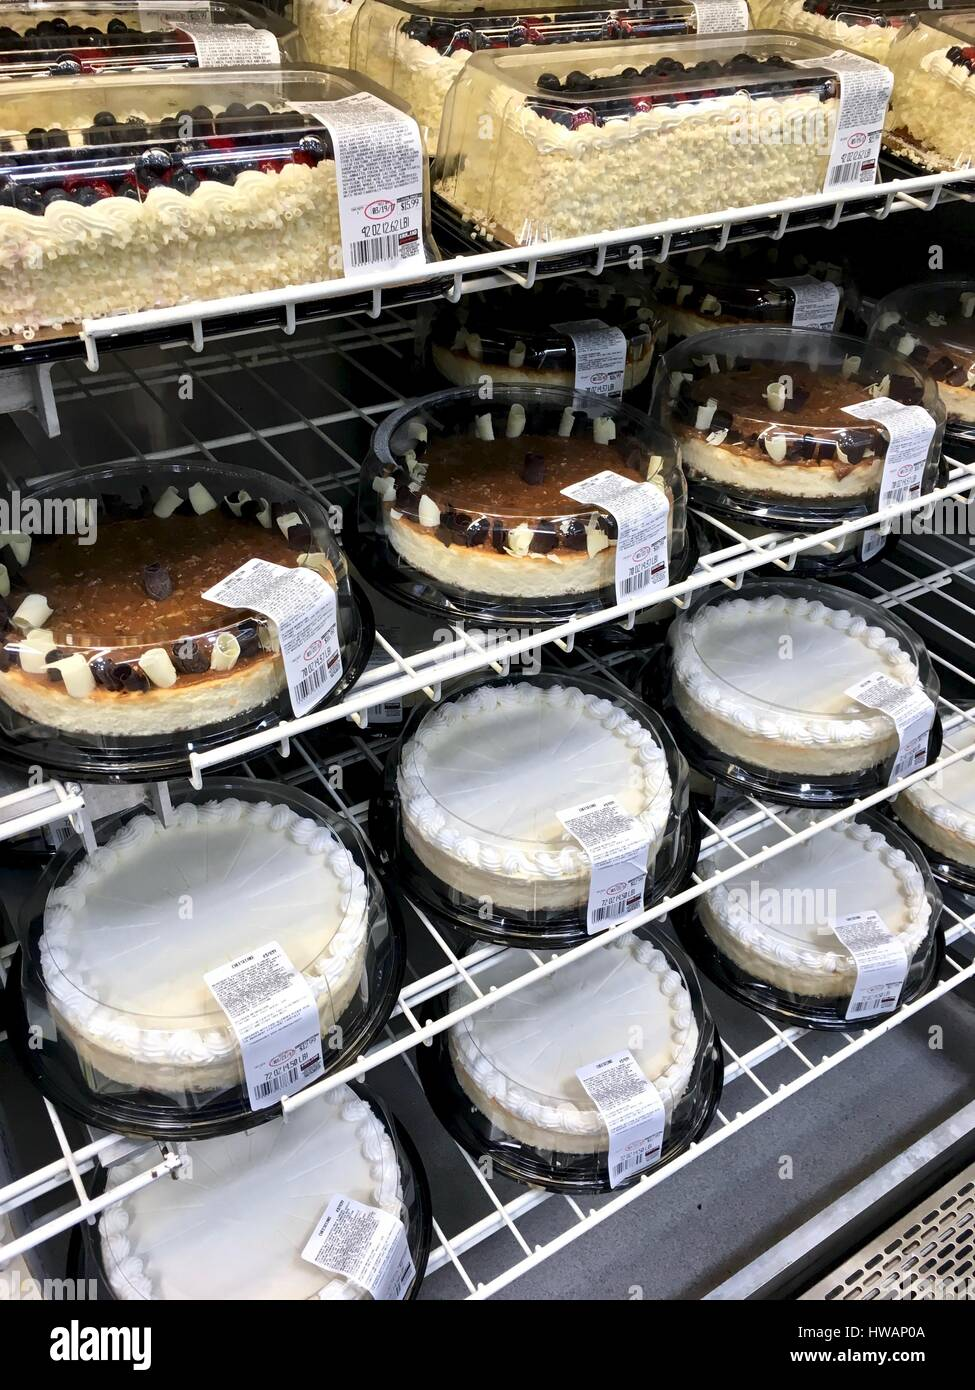 Costco Bakery Order Cakes